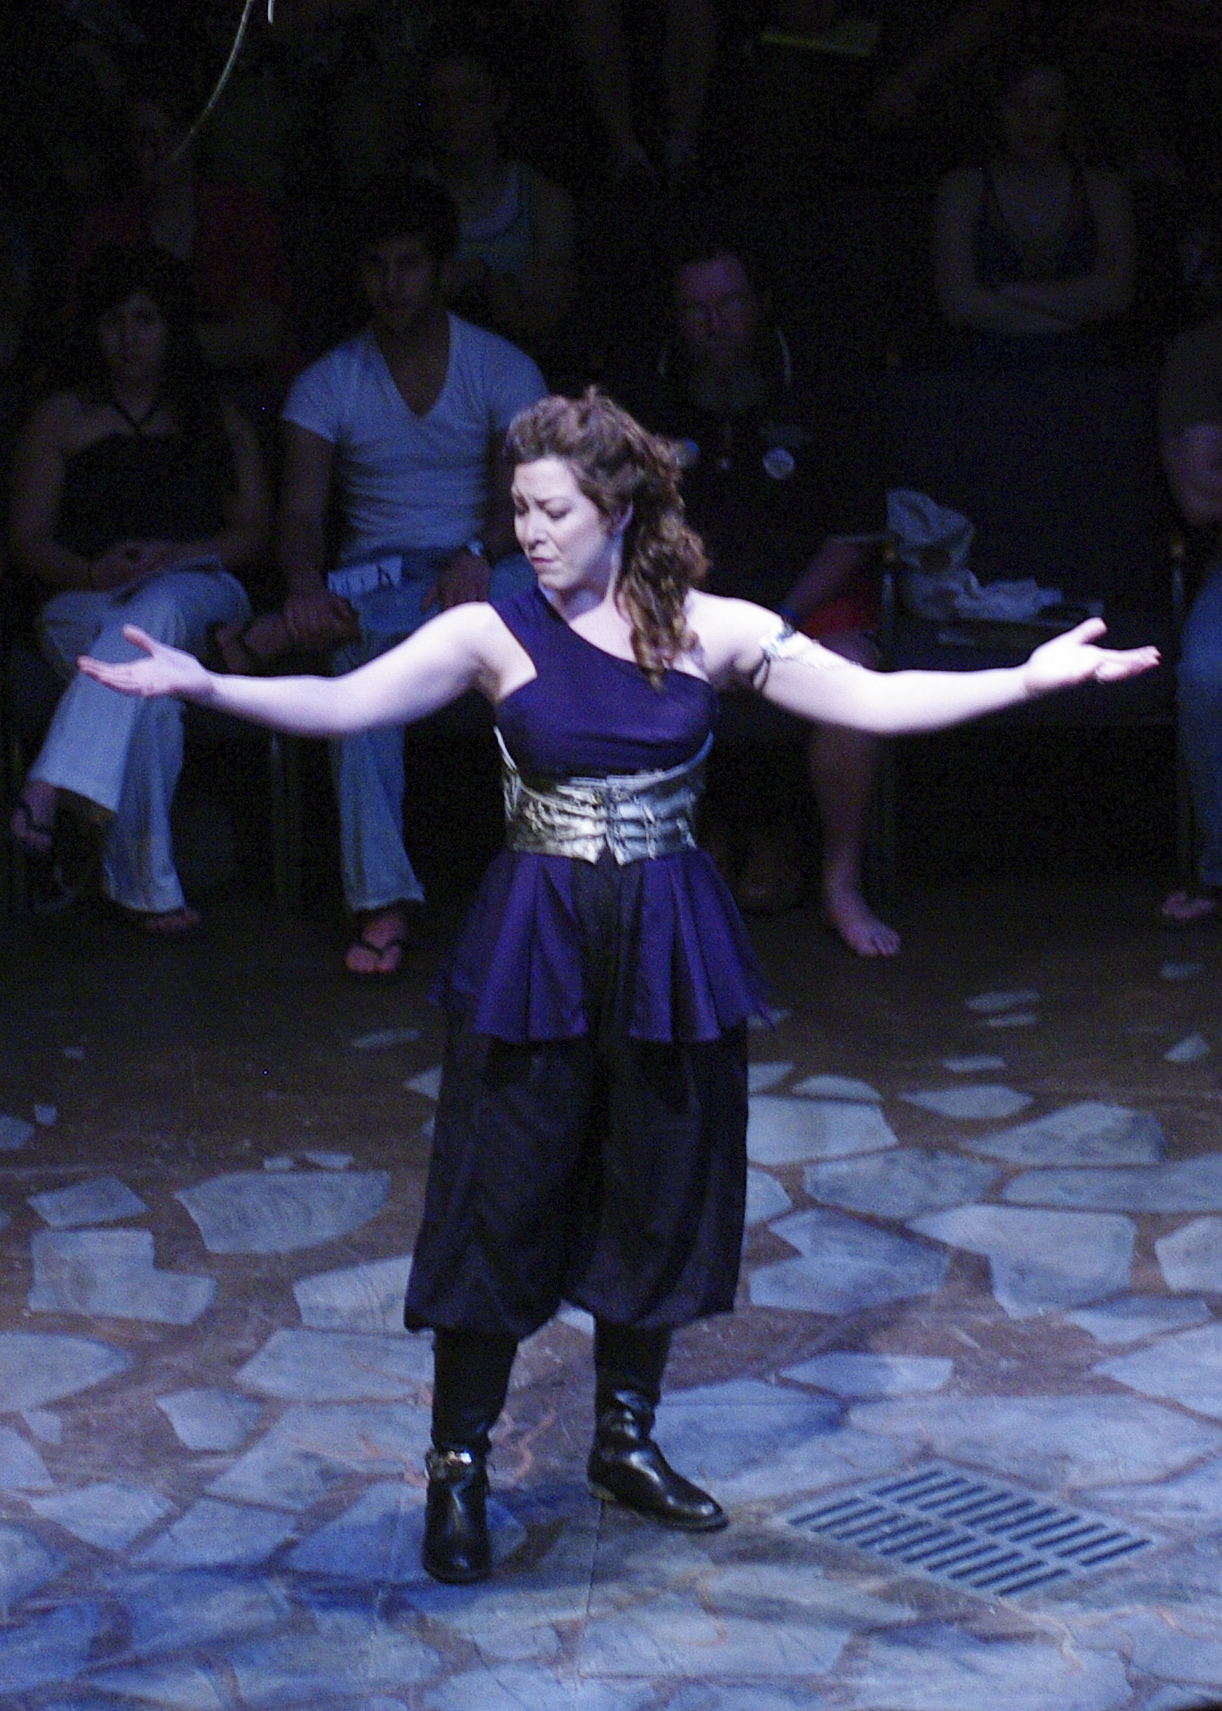 MacBeth_Spr10_058_2.jpg